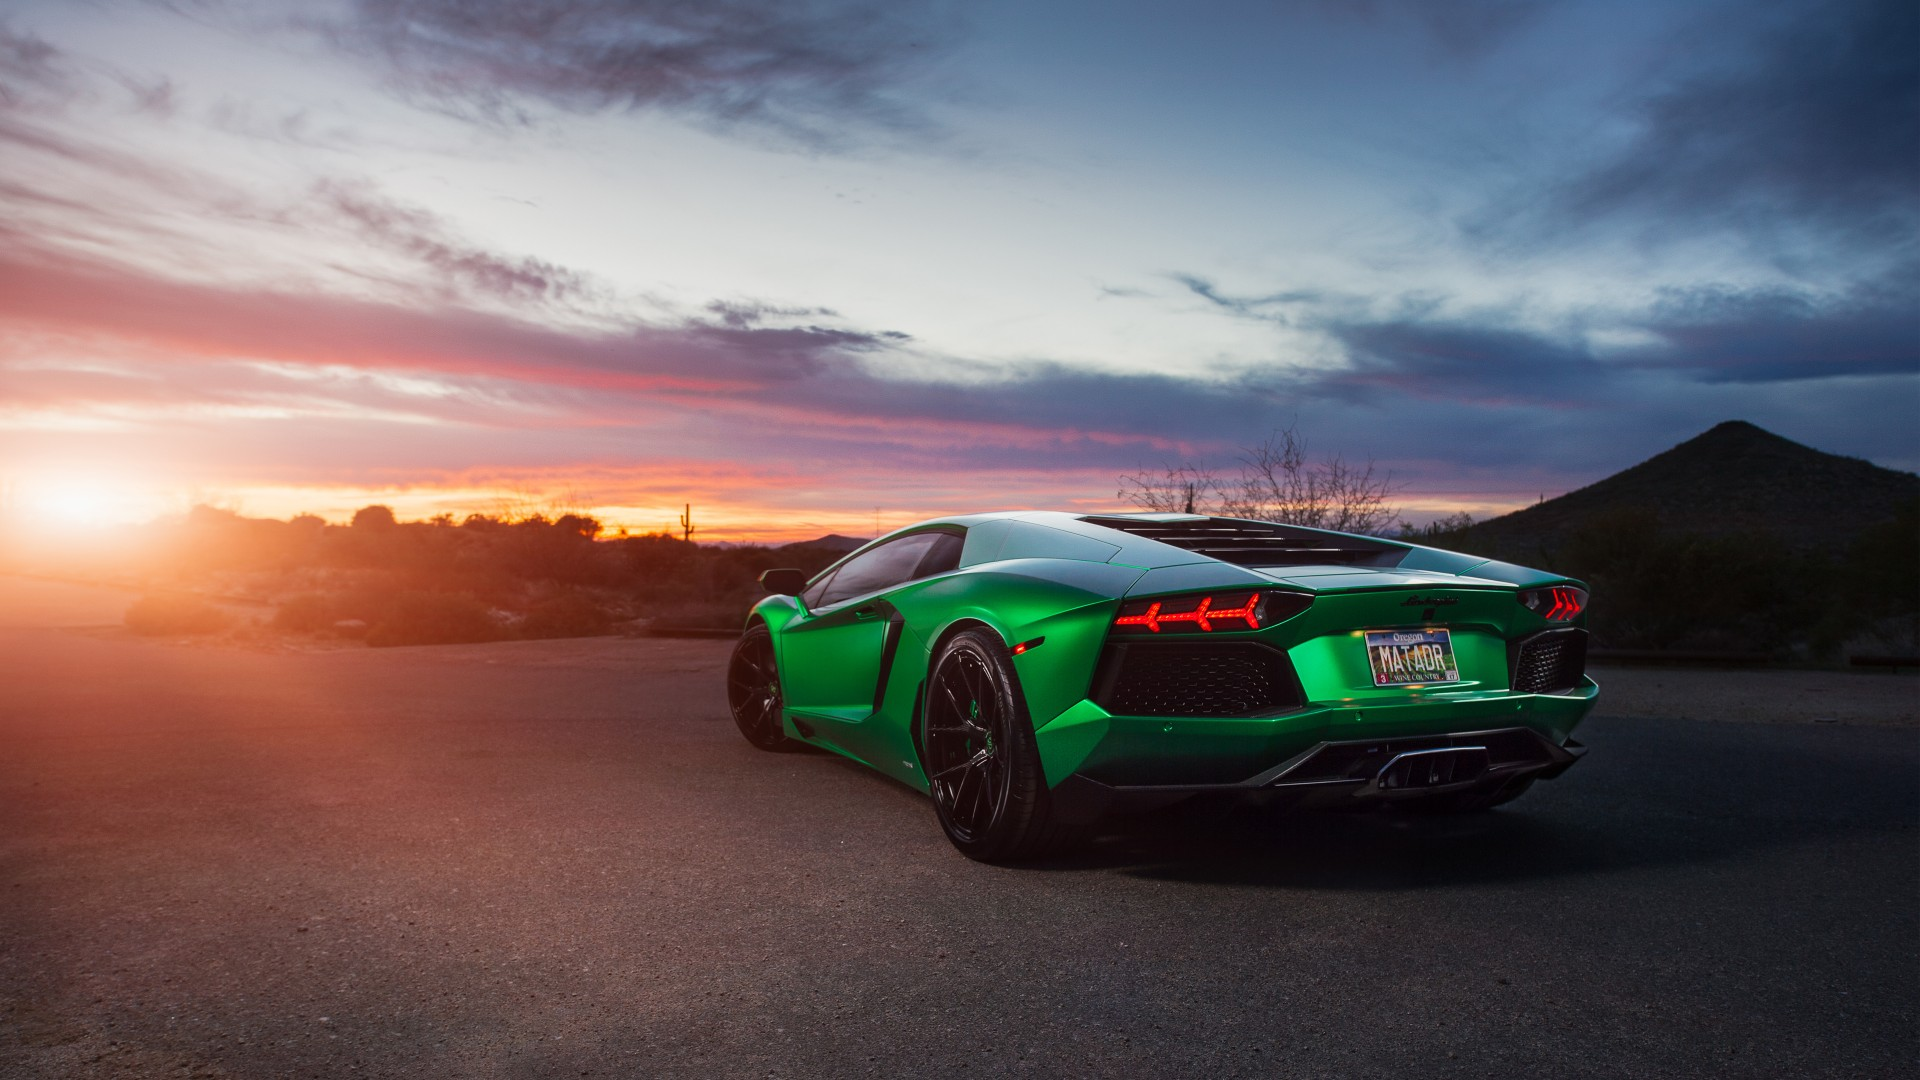 Lamborghini Aventador Green 4k Wallpaper Hd Car